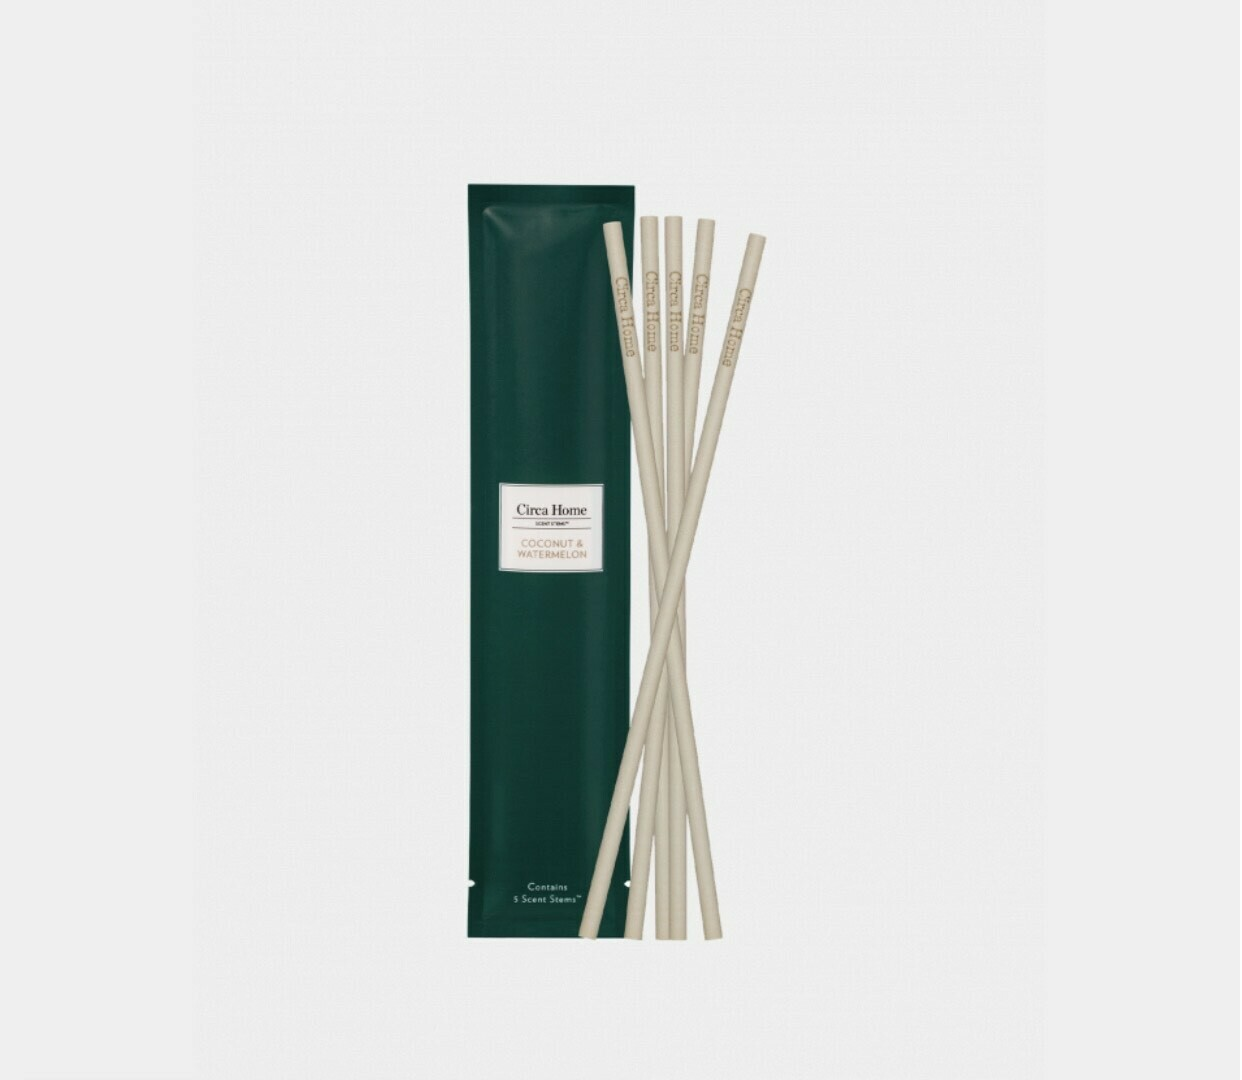 Circa Home Scent Stems-Coconut & Watermelon